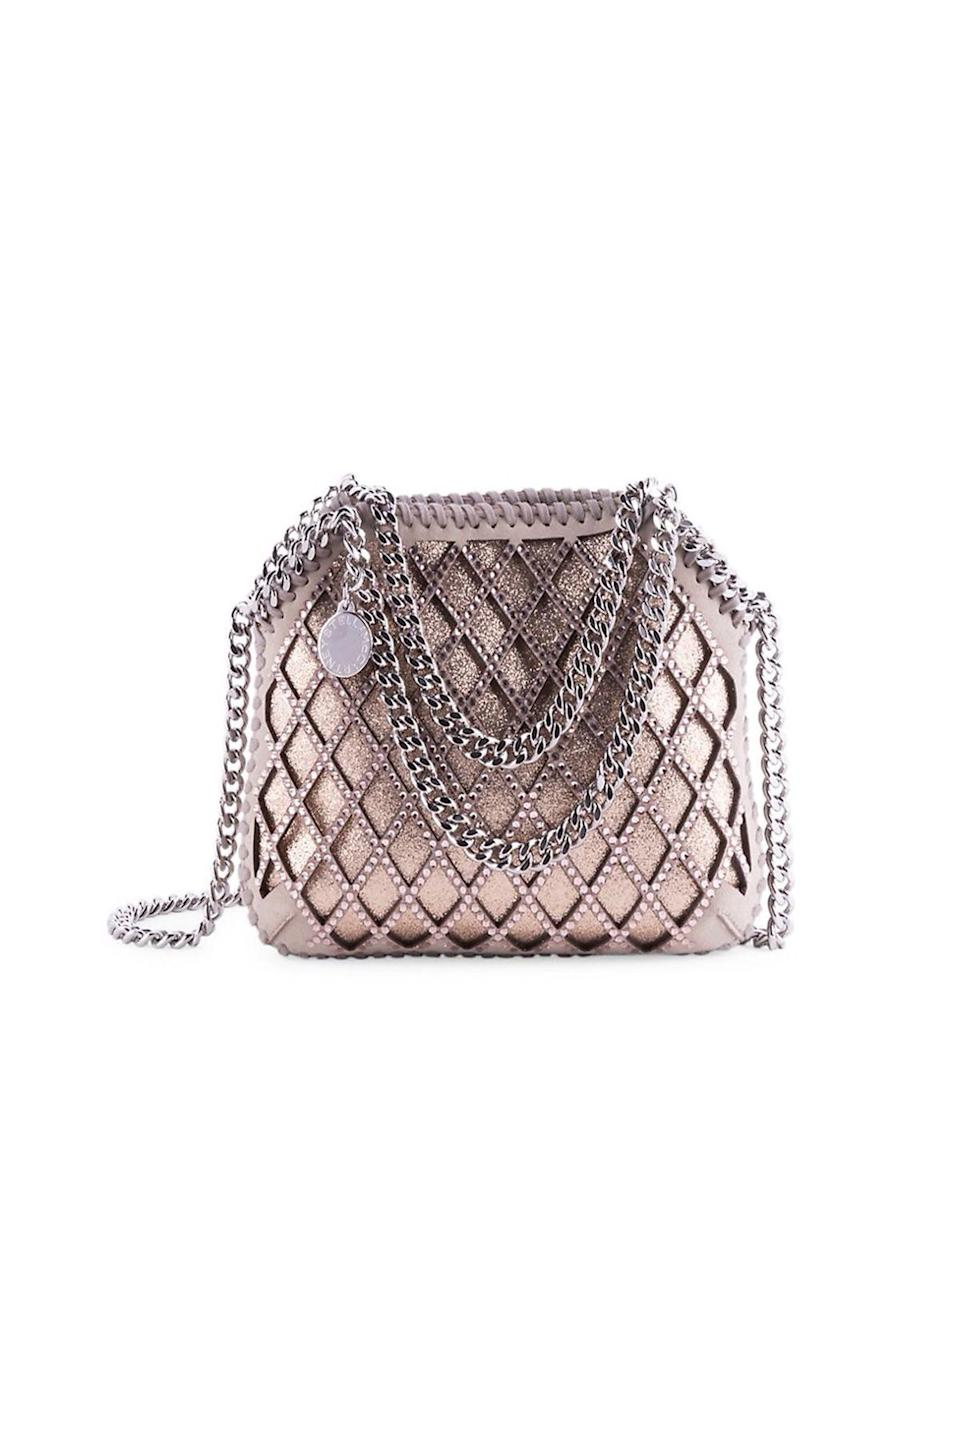 """<p><strong>Stella McCartney</strong></p><p>saksfifthavenue.com</p><p><strong>$775.00</strong></p><p><a href=""""https://go.redirectingat.com?id=74968X1596630&url=https%3A%2F%2Fwww.saksfifthavenue.com%2Fproduct%2Fstella-mccartney-tiny-falabella-embellished-lattice-metallic-tote-0400013309519.html&sref=https%3A%2F%2Fwww.townandcountrymag.com%2Fstyle%2Ffashion-trends%2Fg36544376%2Fbest-metallic-accessories%2F"""" rel=""""nofollow noopener"""" target=""""_blank"""" data-ylk=""""slk:Shop Now"""" class=""""link rapid-noclick-resp"""">Shop Now</a></p><p>Crystal latticework, chain straps, and a rose gold leather pack a lot of glitz into a small evening bag. </p>"""